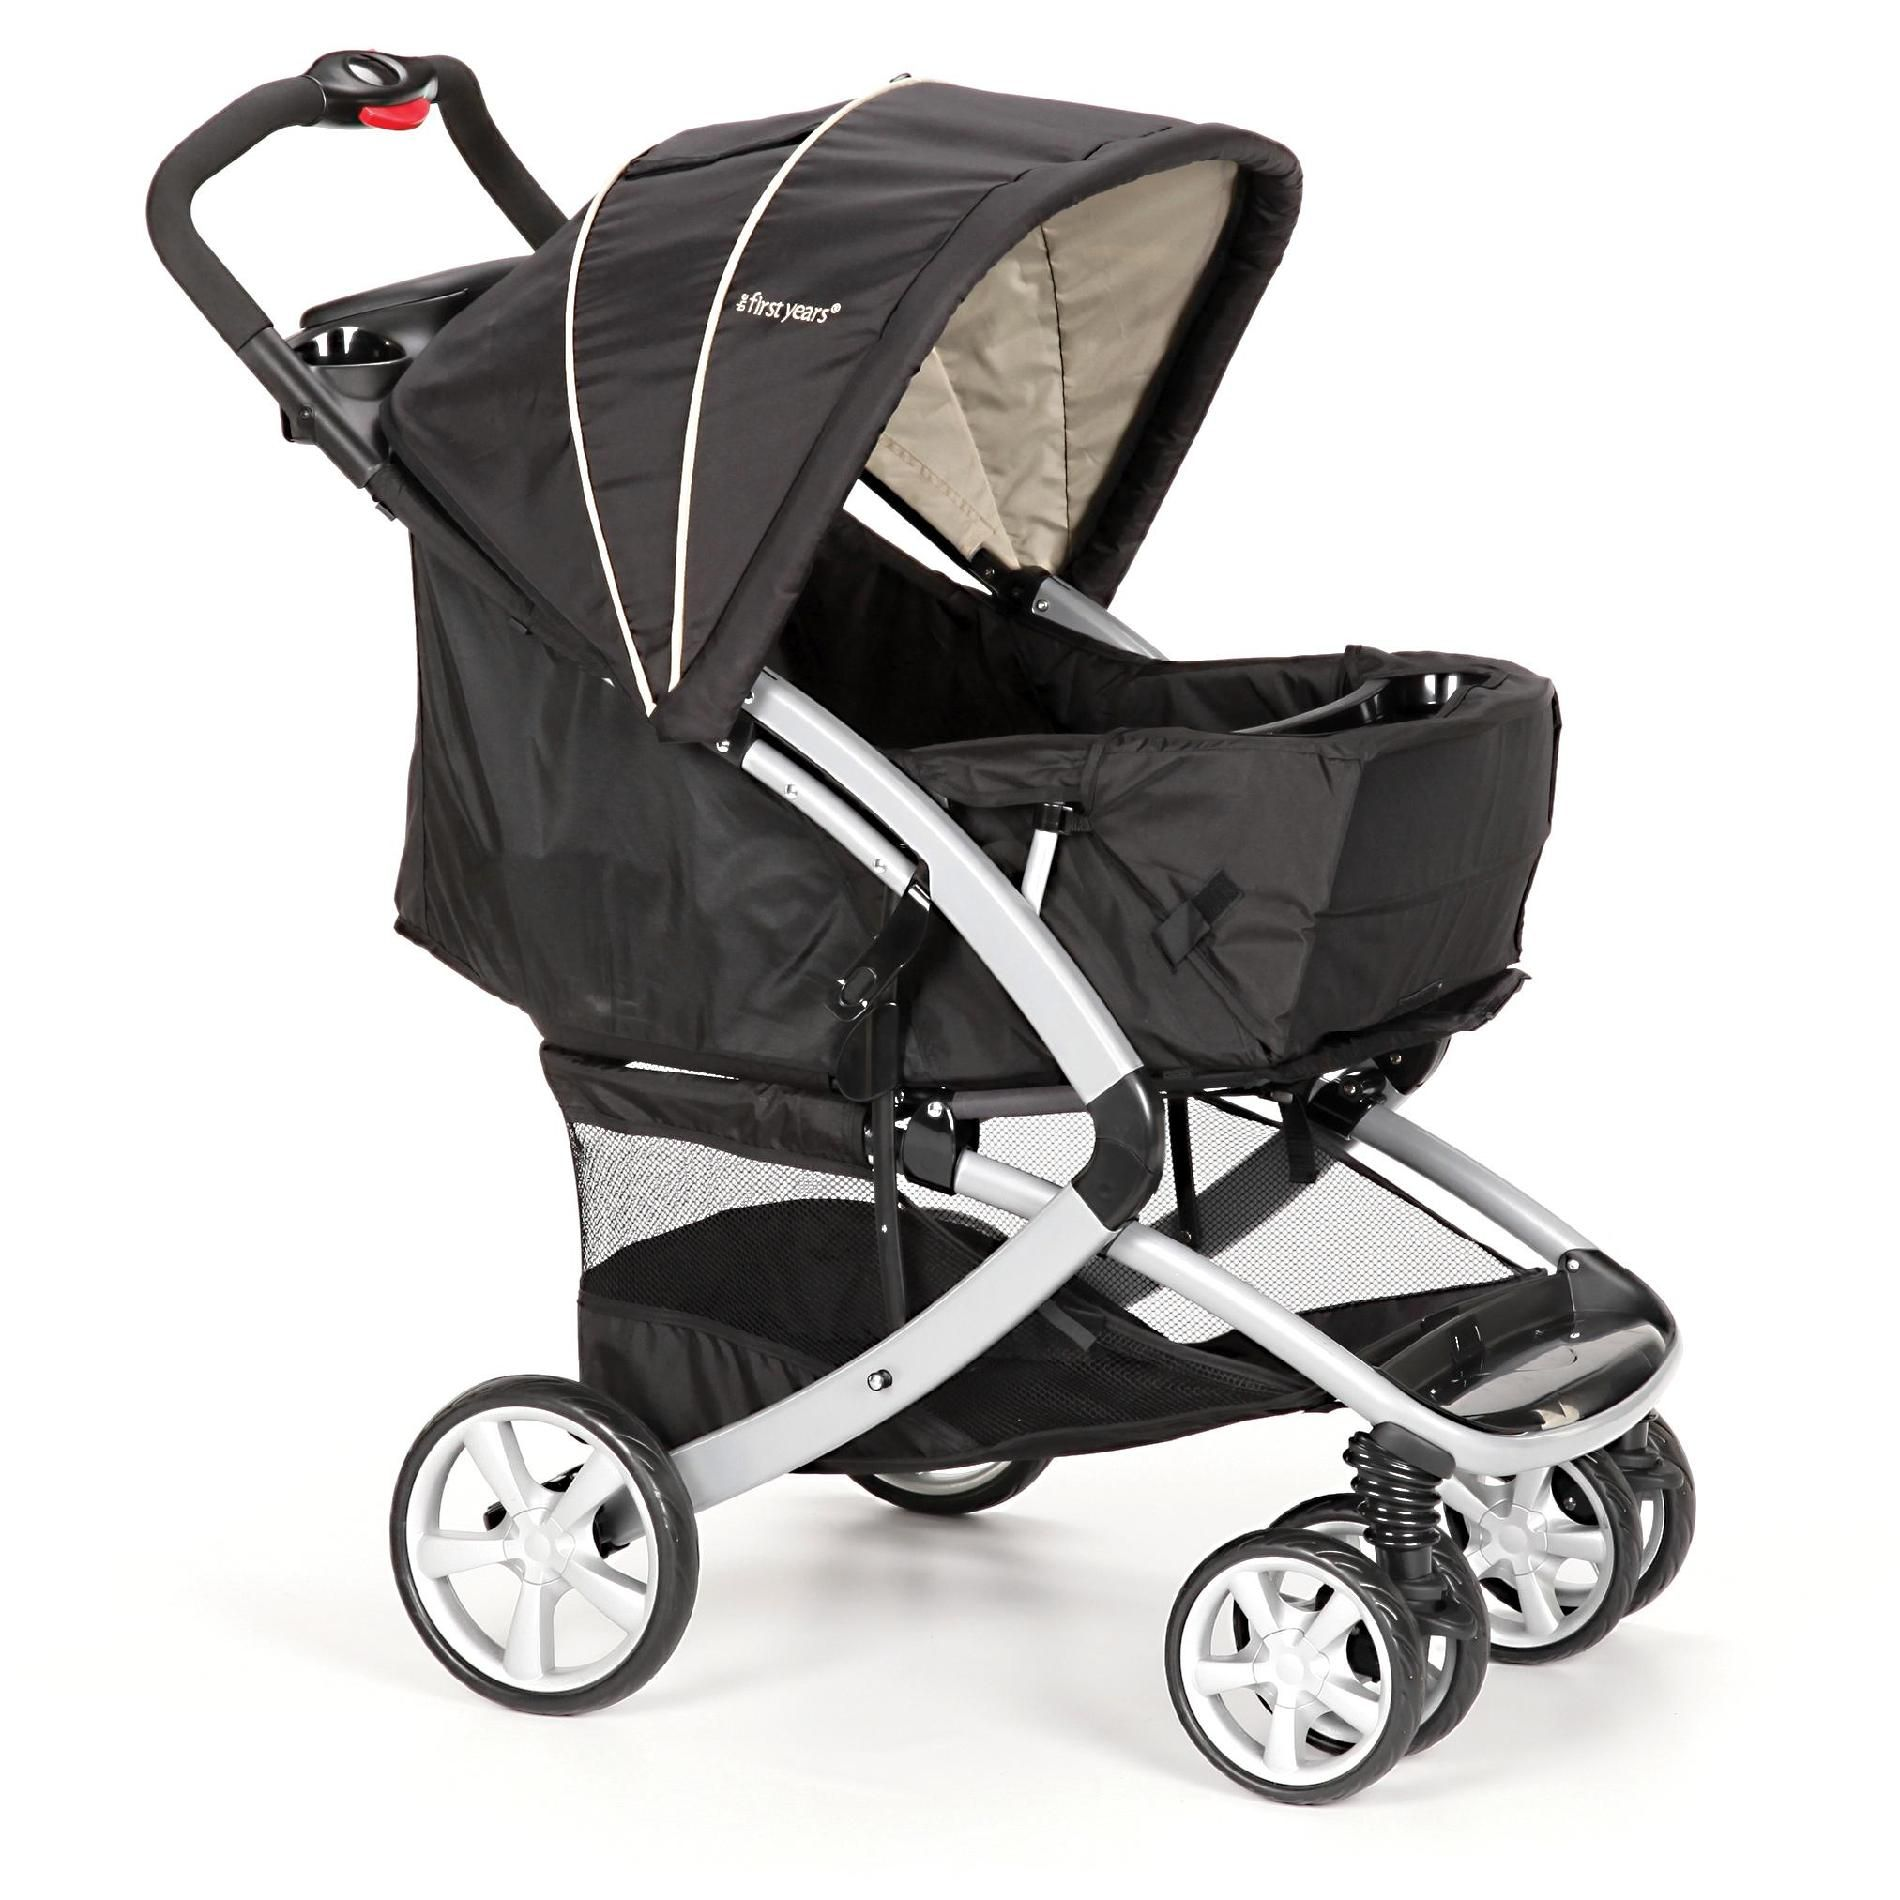 Infant Carrier Kmart Strollers Get The Best Baby Travel Systems At Kmart Best